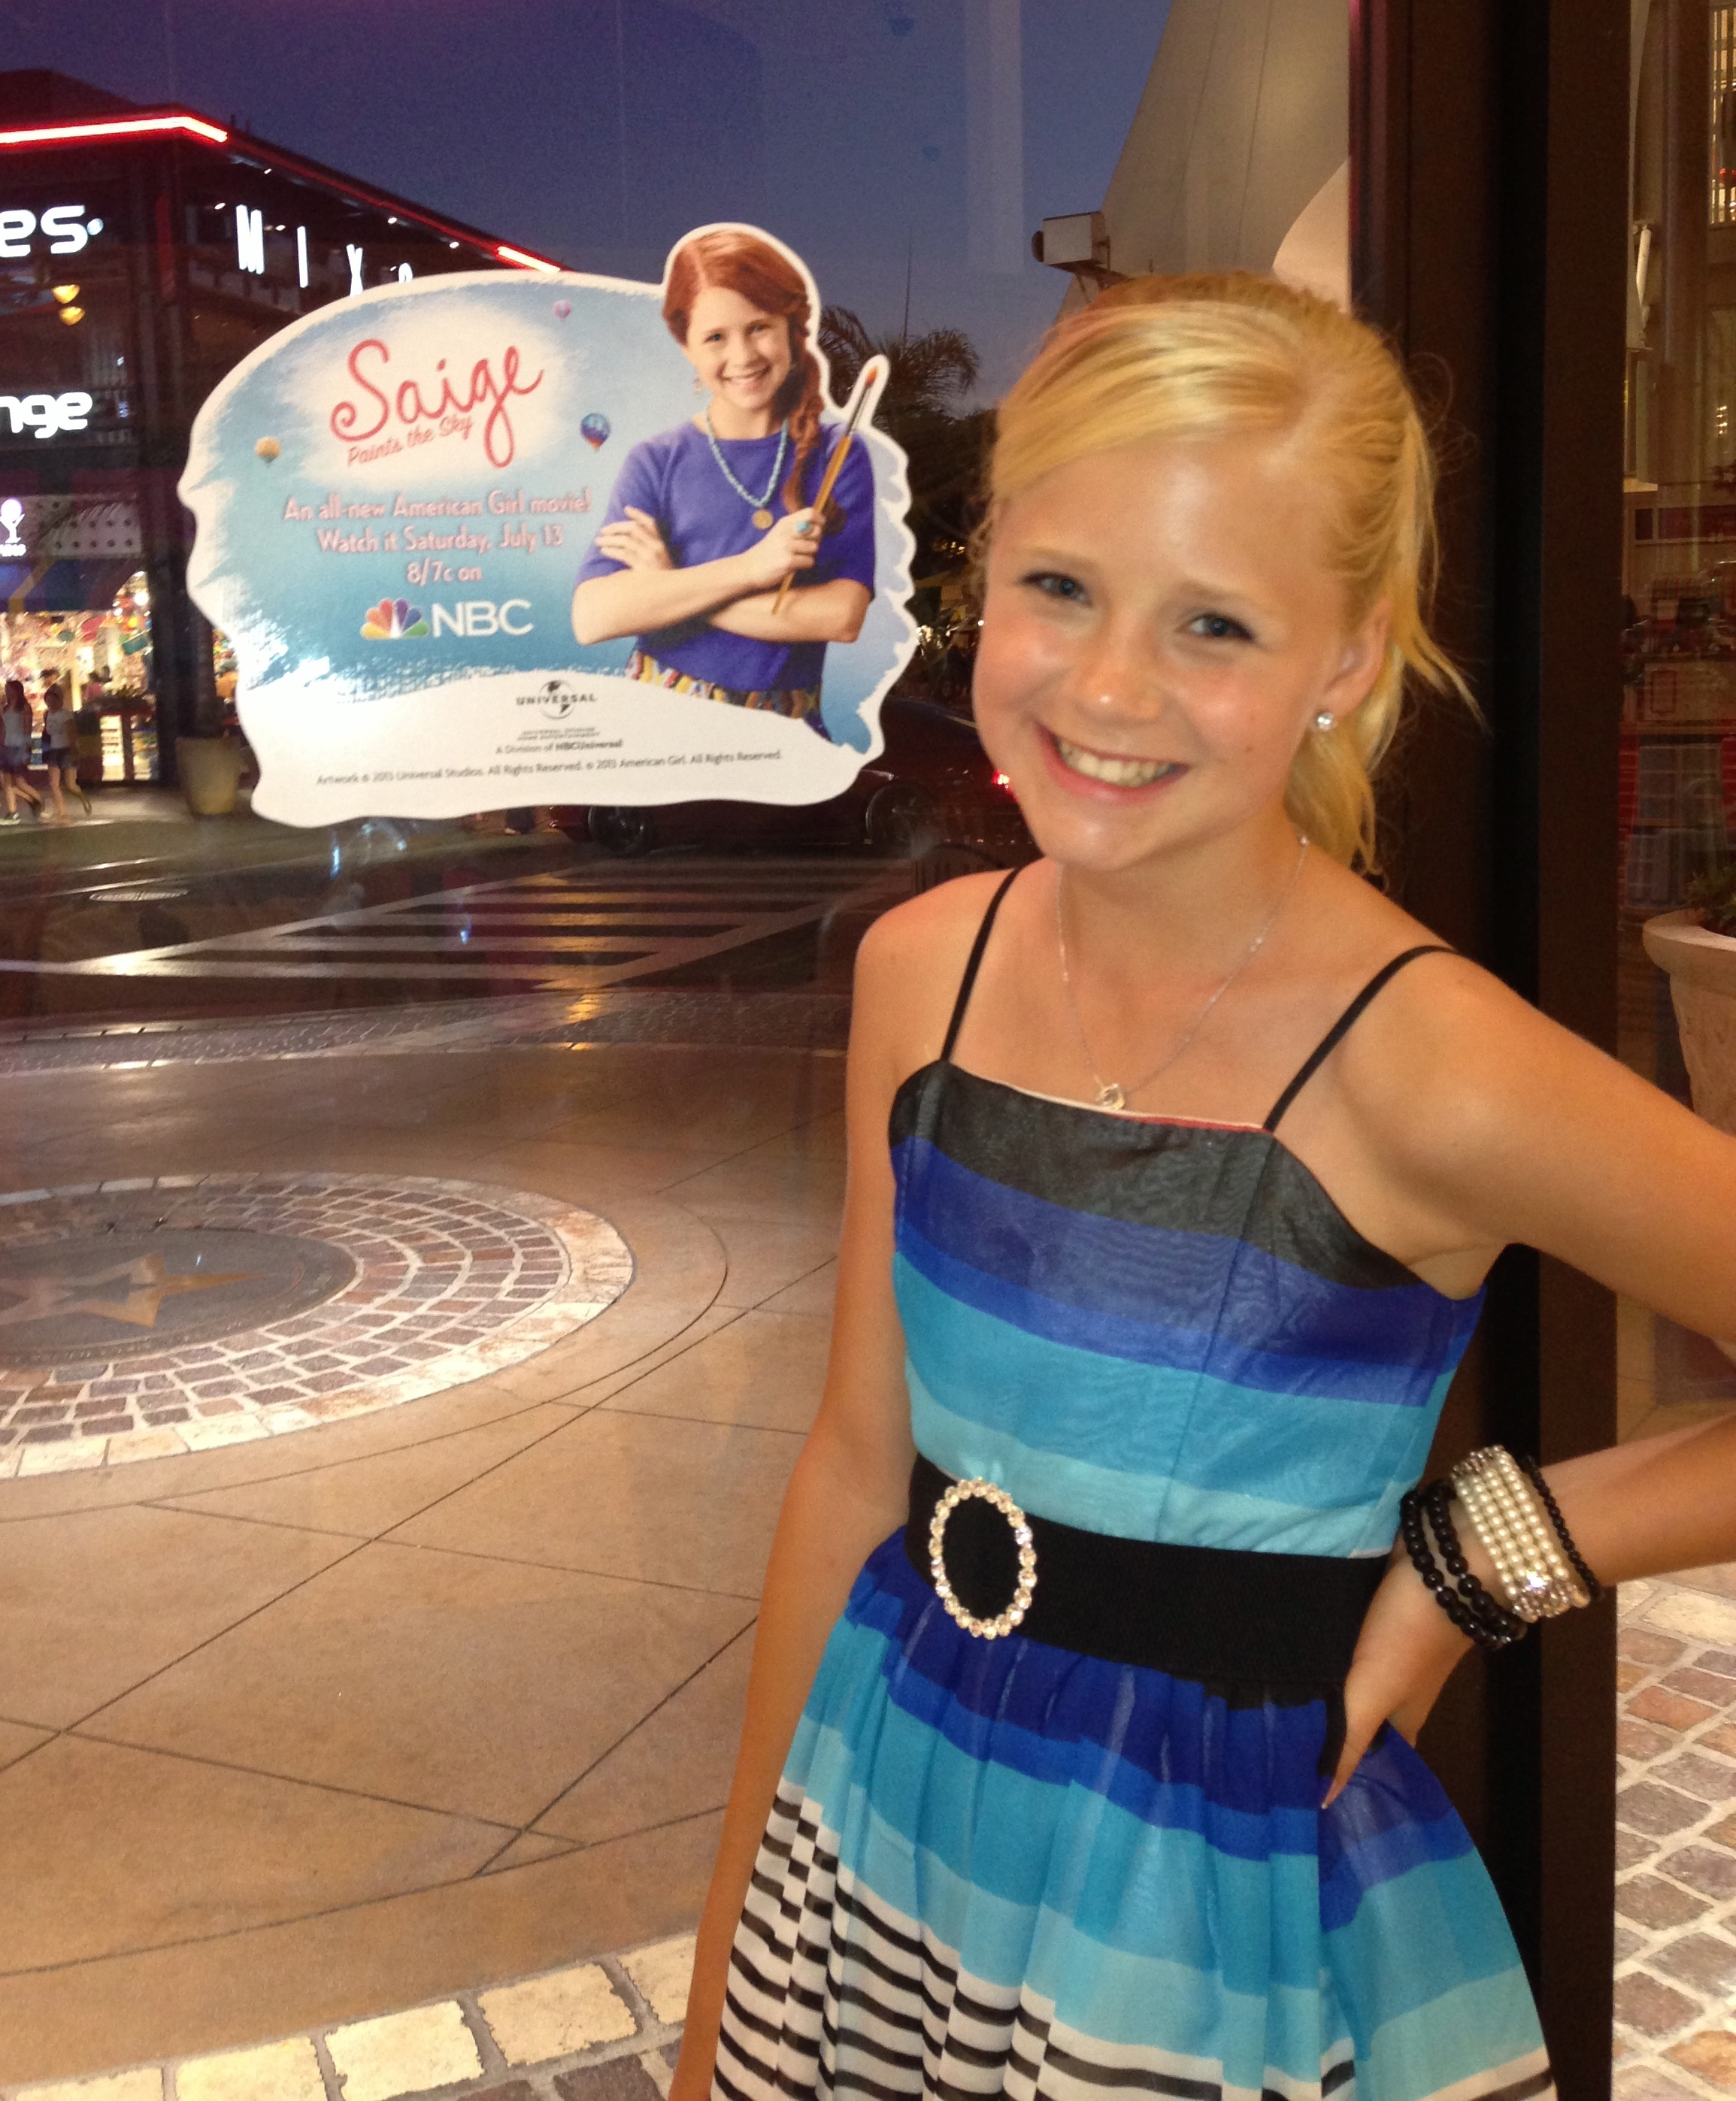 All American Girl Movie sidney fullmer: hollywood's next lds child star - the daily